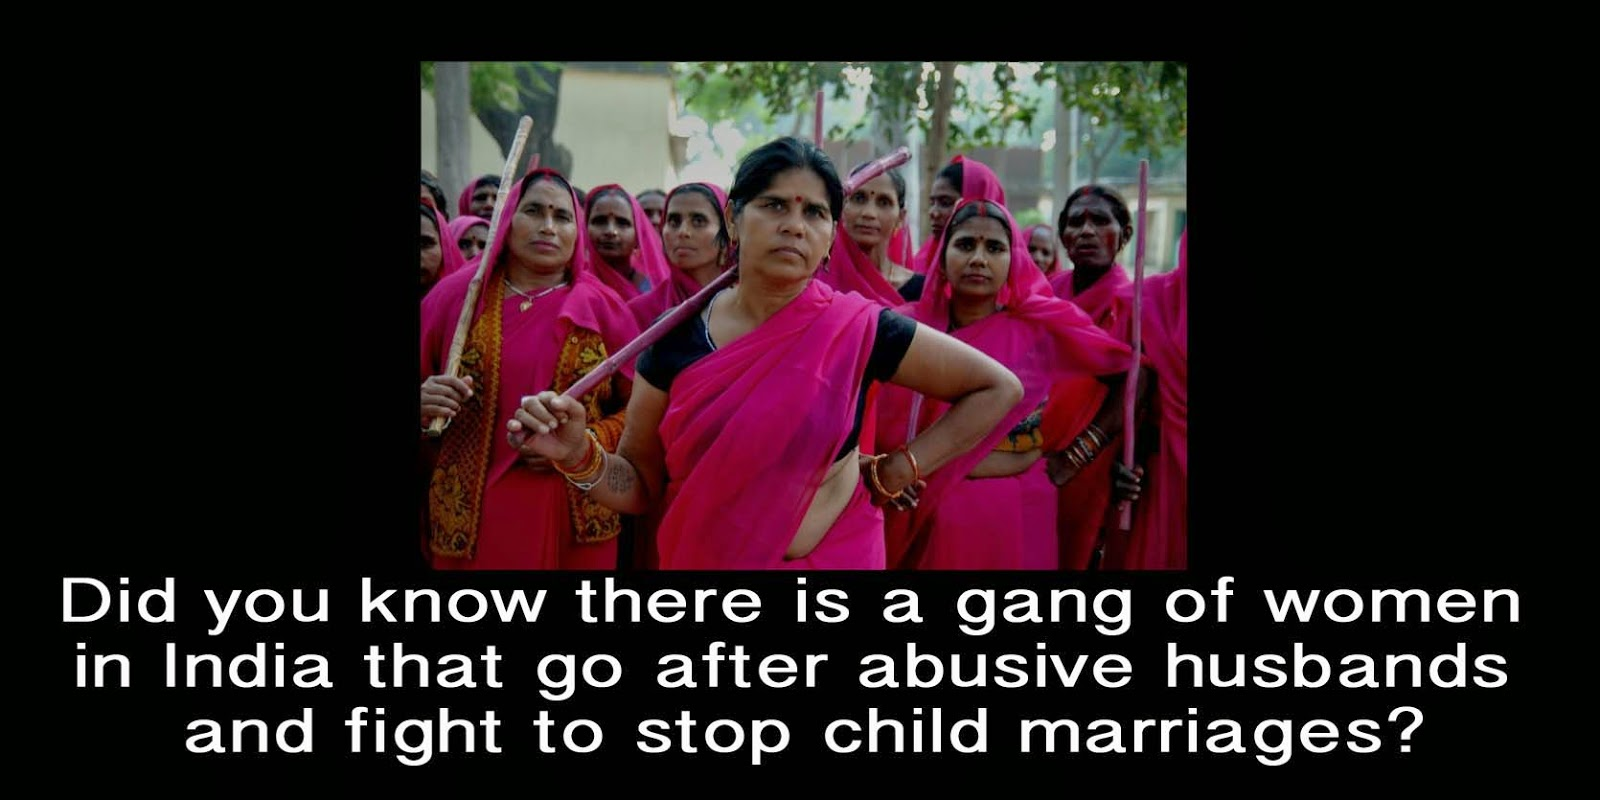 Meet India's Gulabi Gang - Female Activists for Change - Did you know there is a gang of women in India that go after abusive husbands and fight to stop child marriages